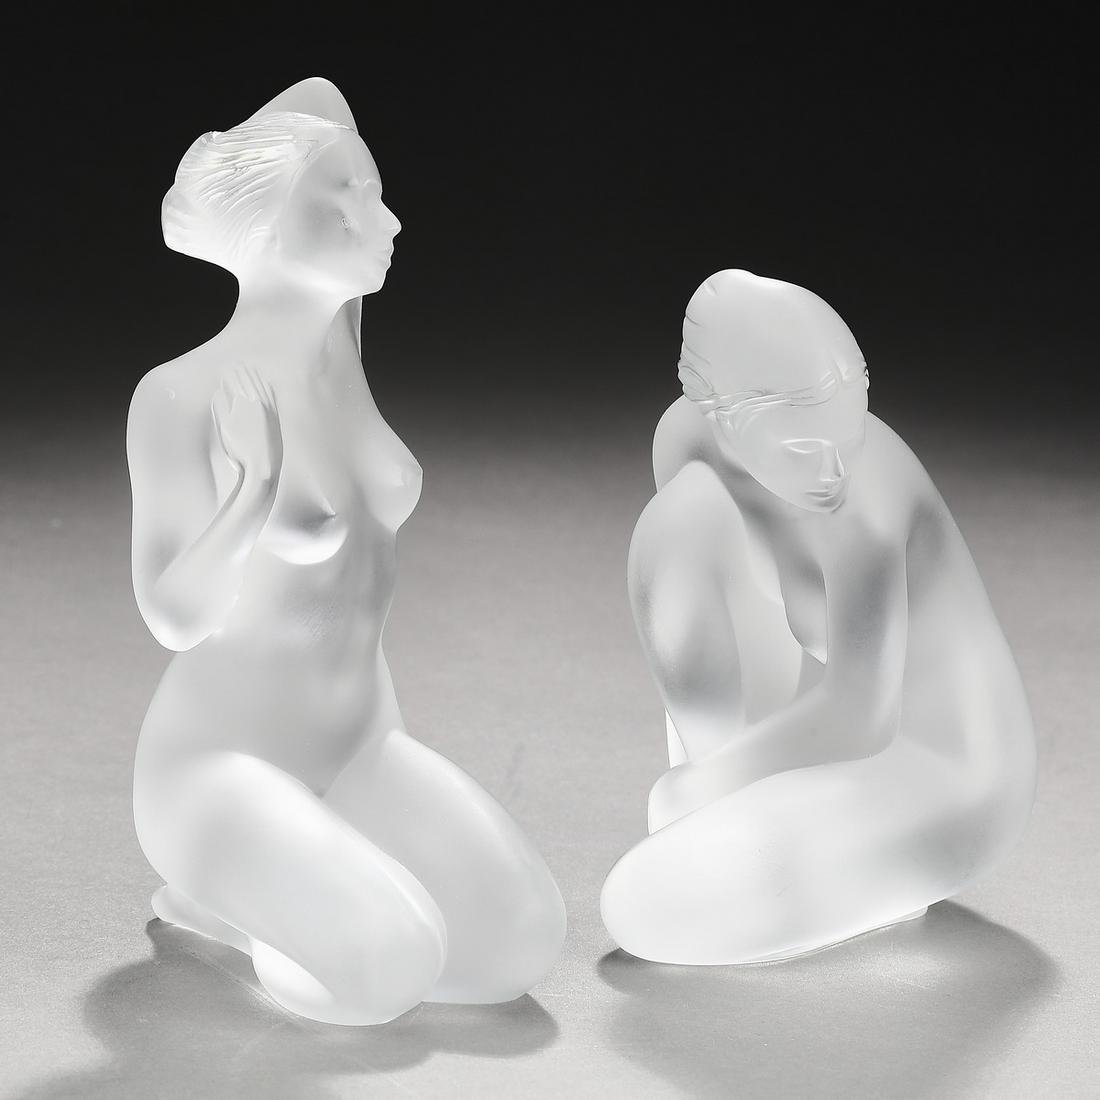 (2) Petite Lalique crystal goddess figures, marked